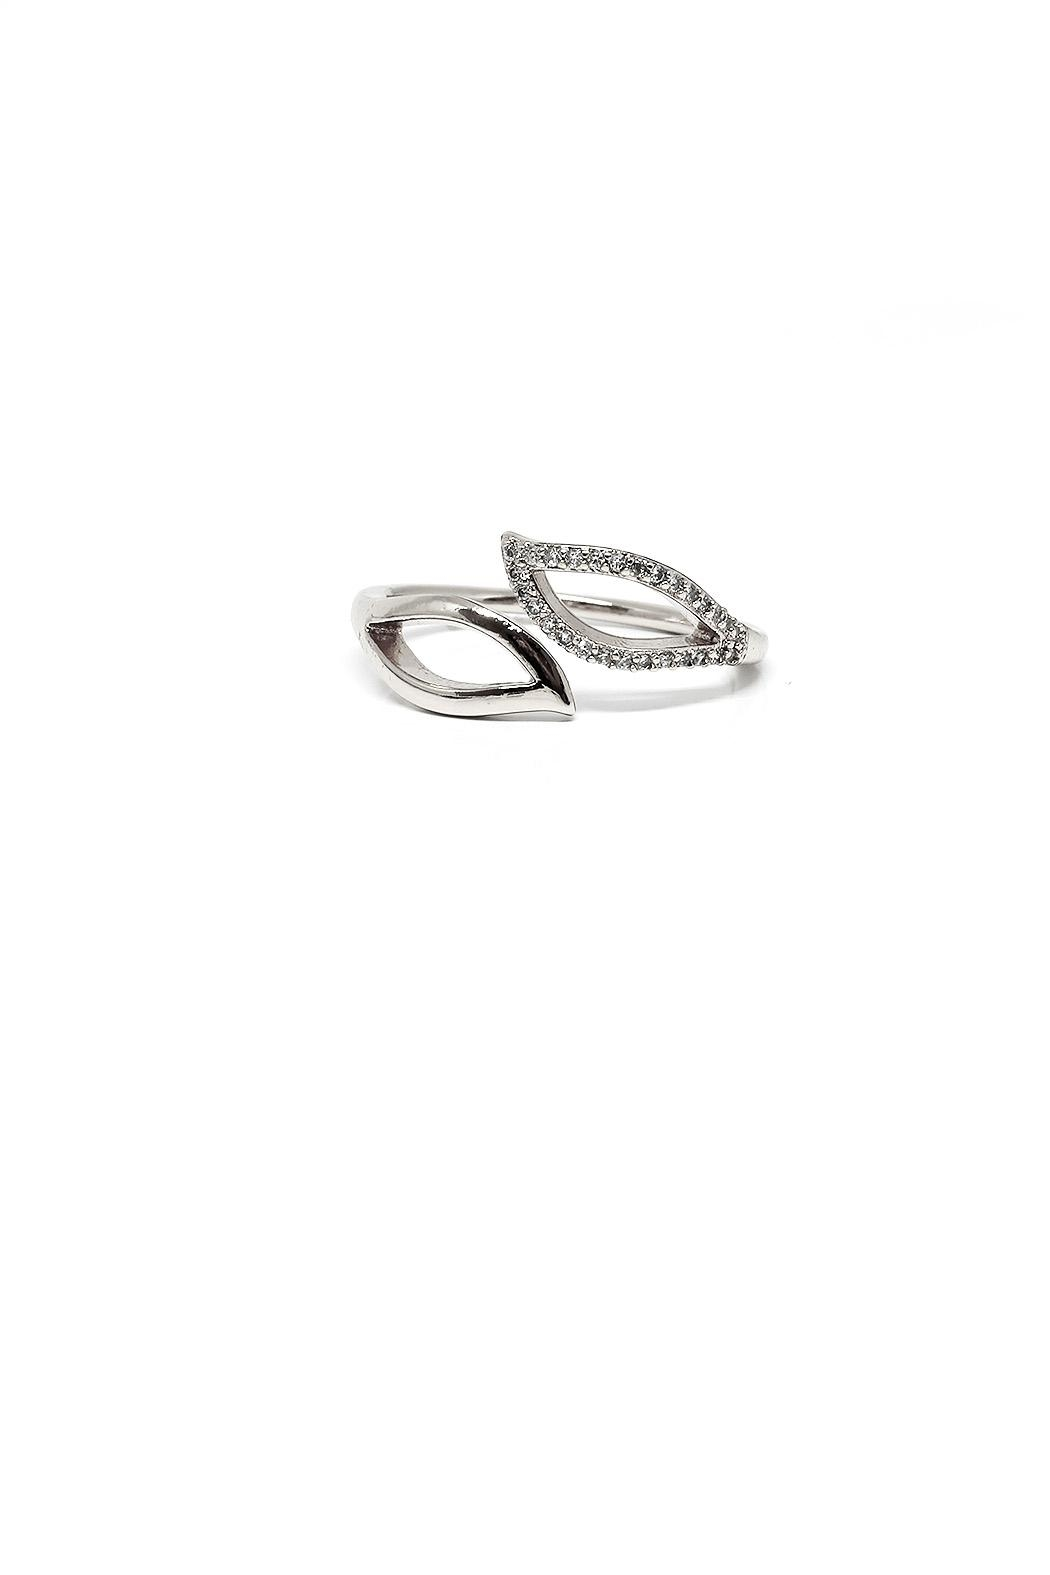 TINK TINK Adjustable Rhodium Ring - Main Image